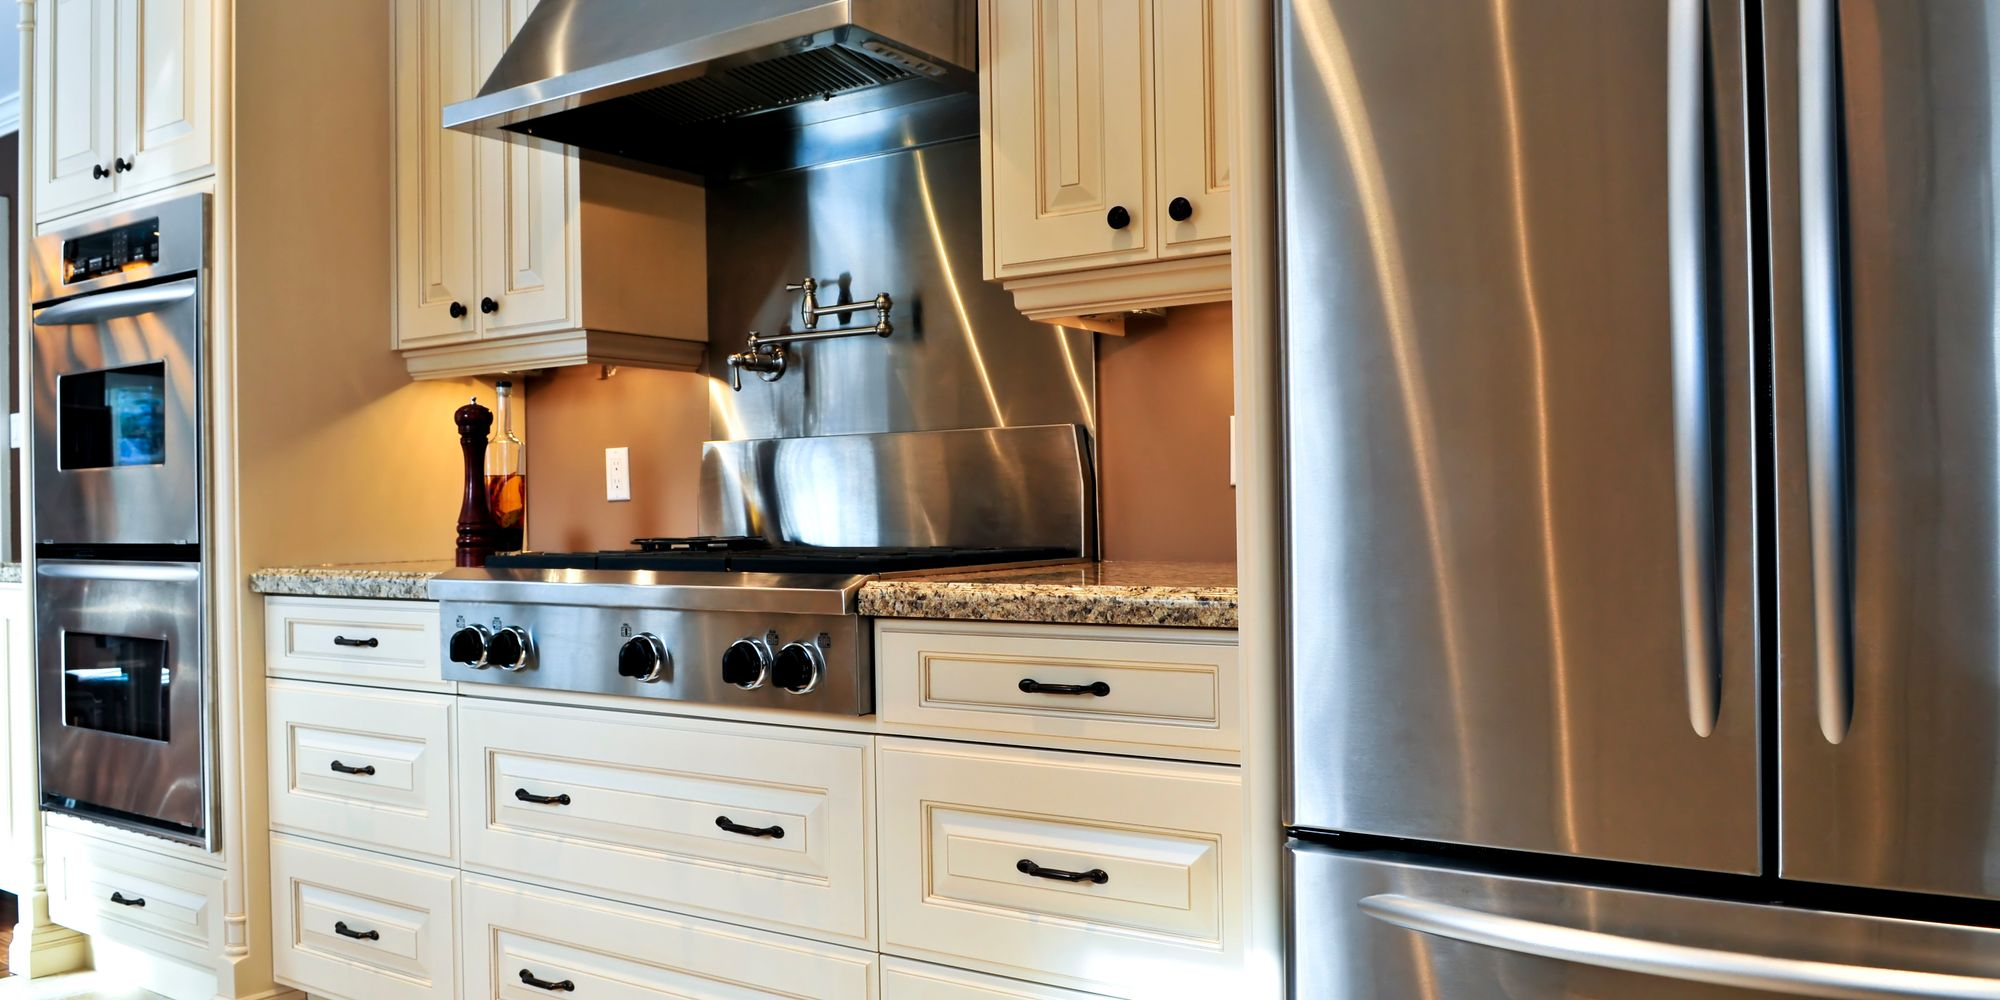 slash the cost of a new kitchen buy second hand huffpost uk